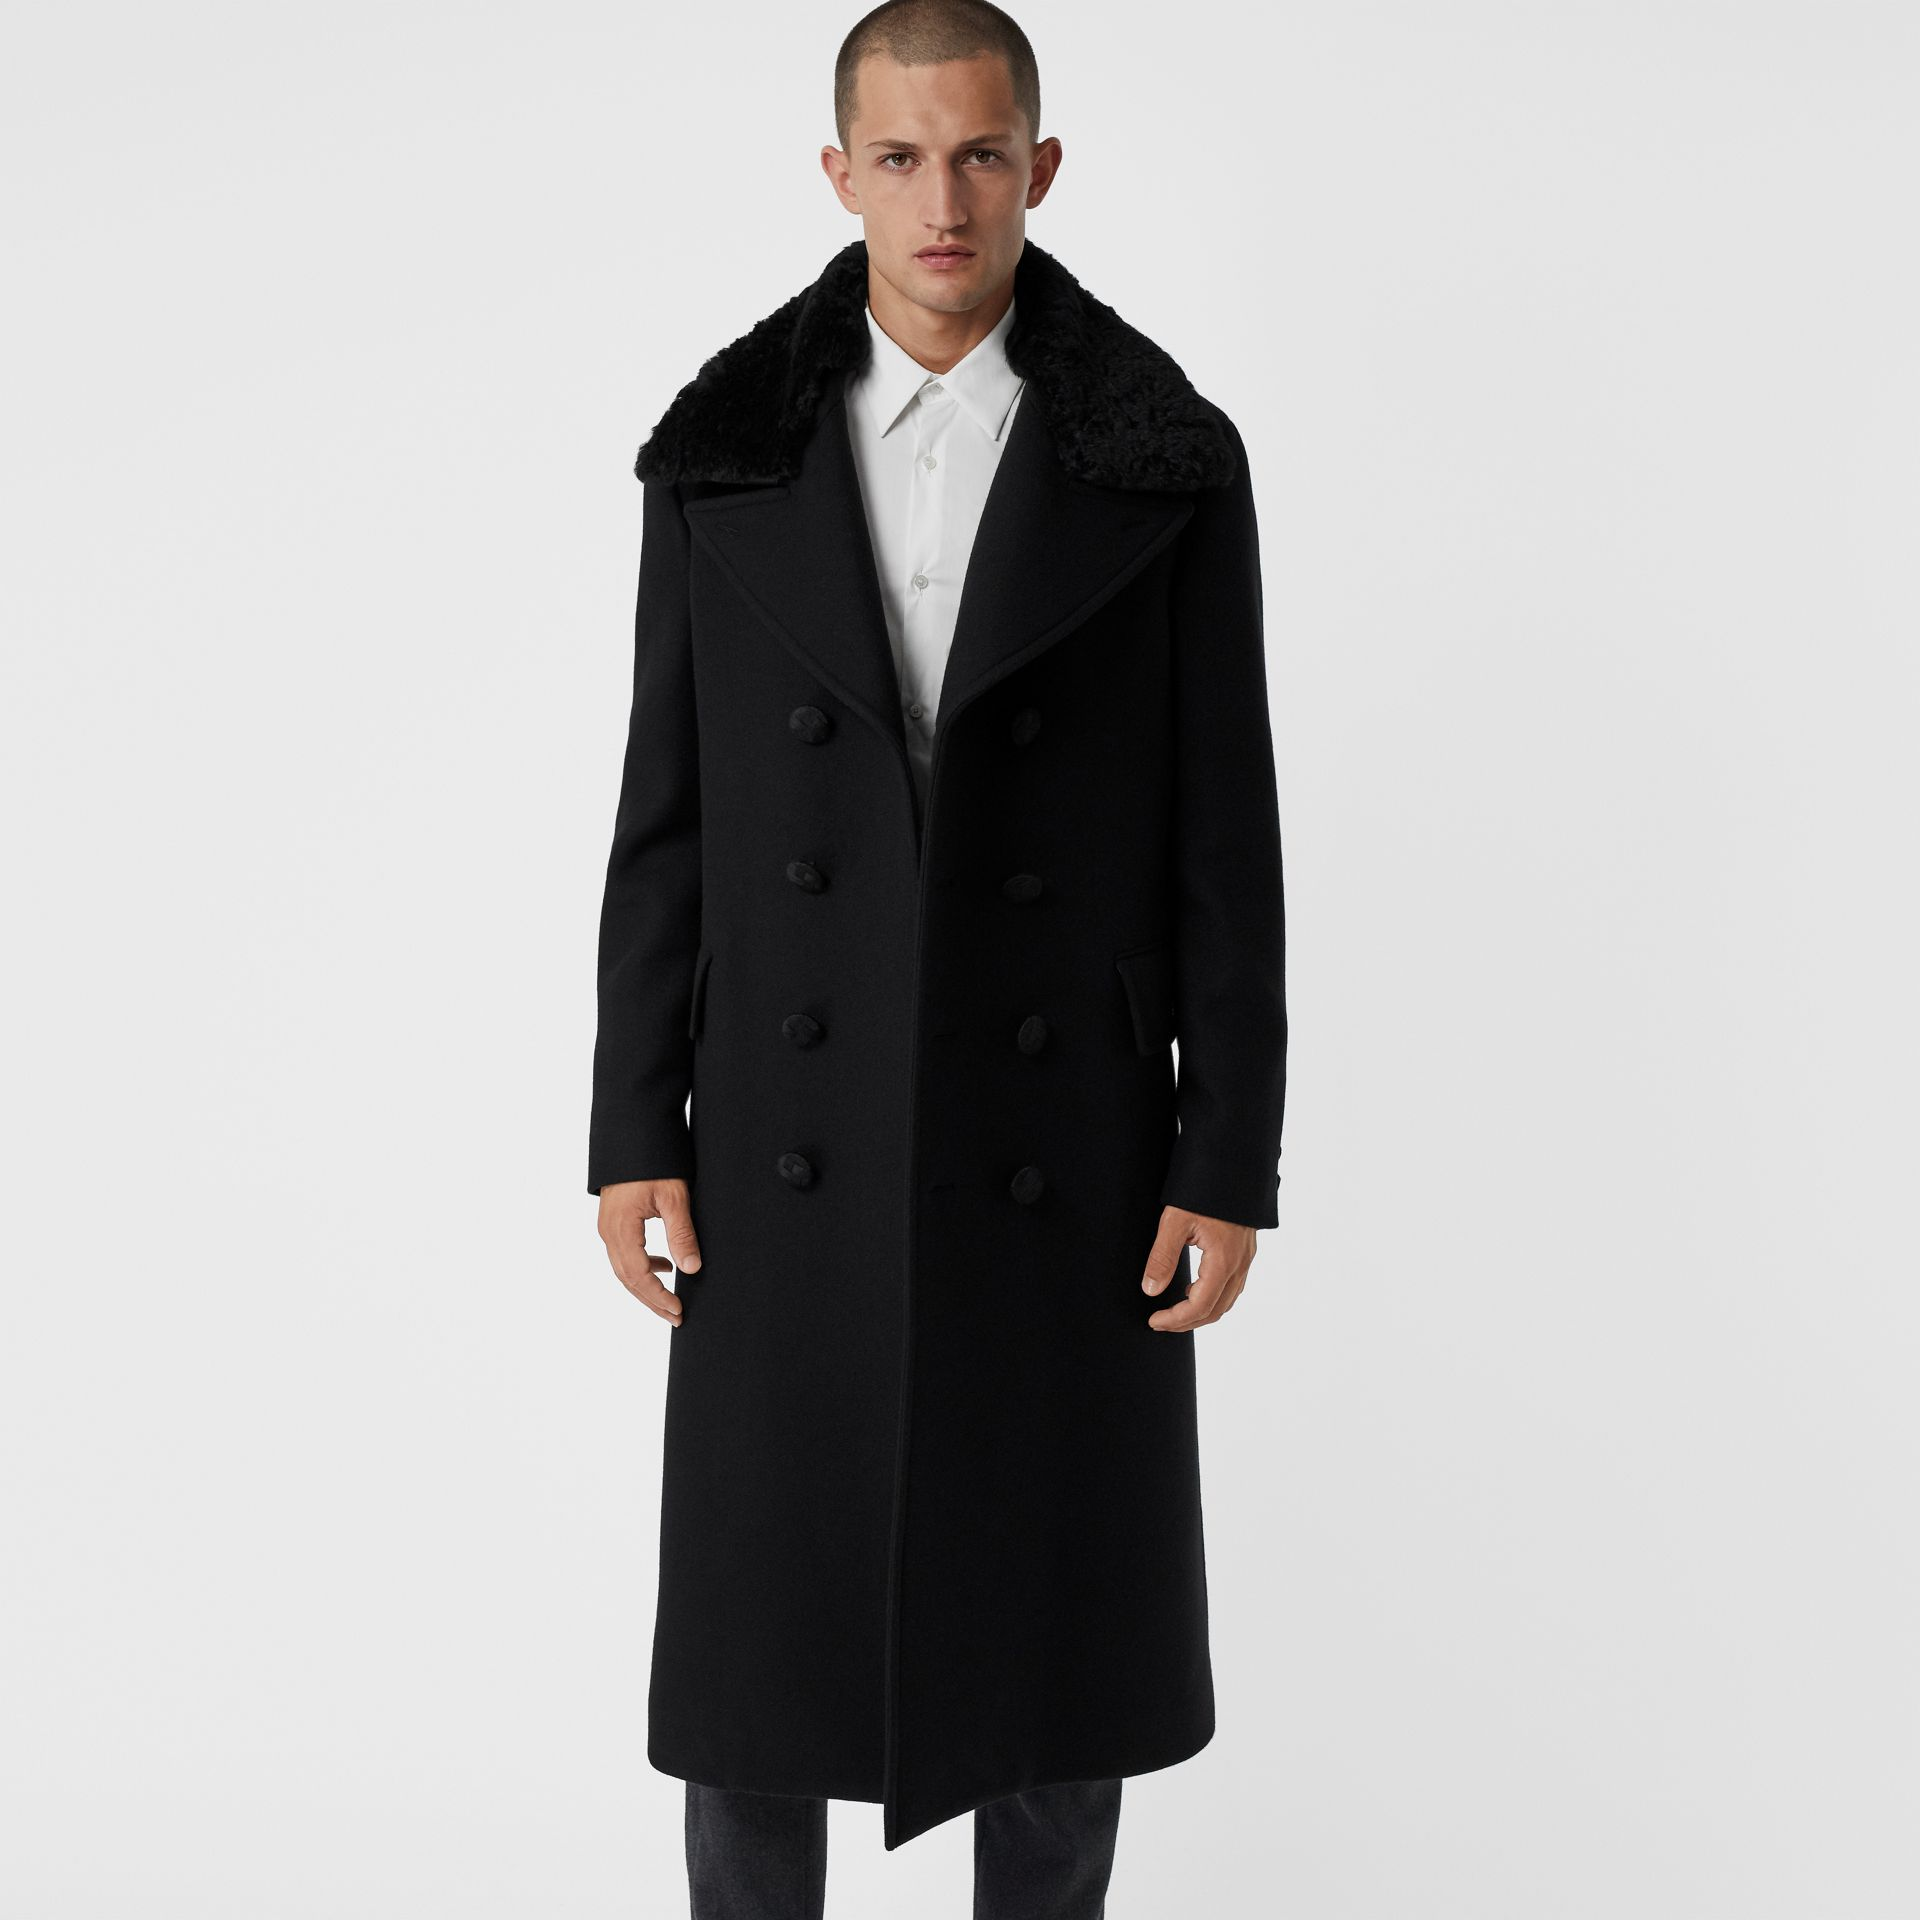 Detachable Shearling Collar Cashmere Chesterfield in Black - Men | Burberry - gallery image 5